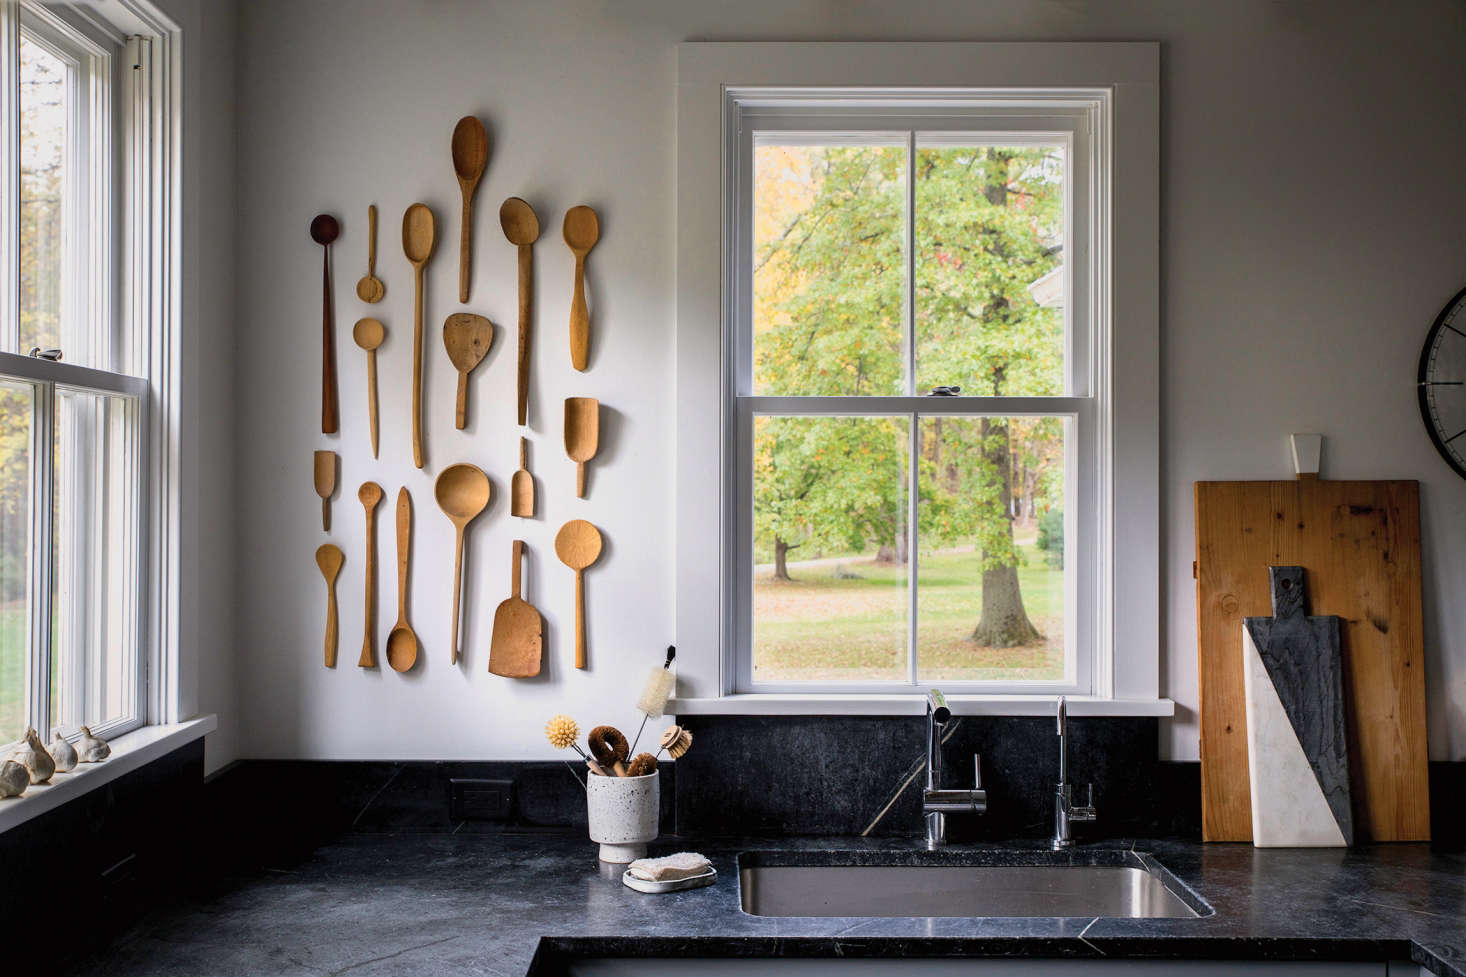 For the dramatic dark countertops, Dunja chose traditional soapstone from Barra & Trumbore in Kerhonkson, New York. Her wooden spoon installation is comprised of vintage pieces procured on Etsy and eBay. Dunja, who is a textile designer as well as a potter, made the soap dish.